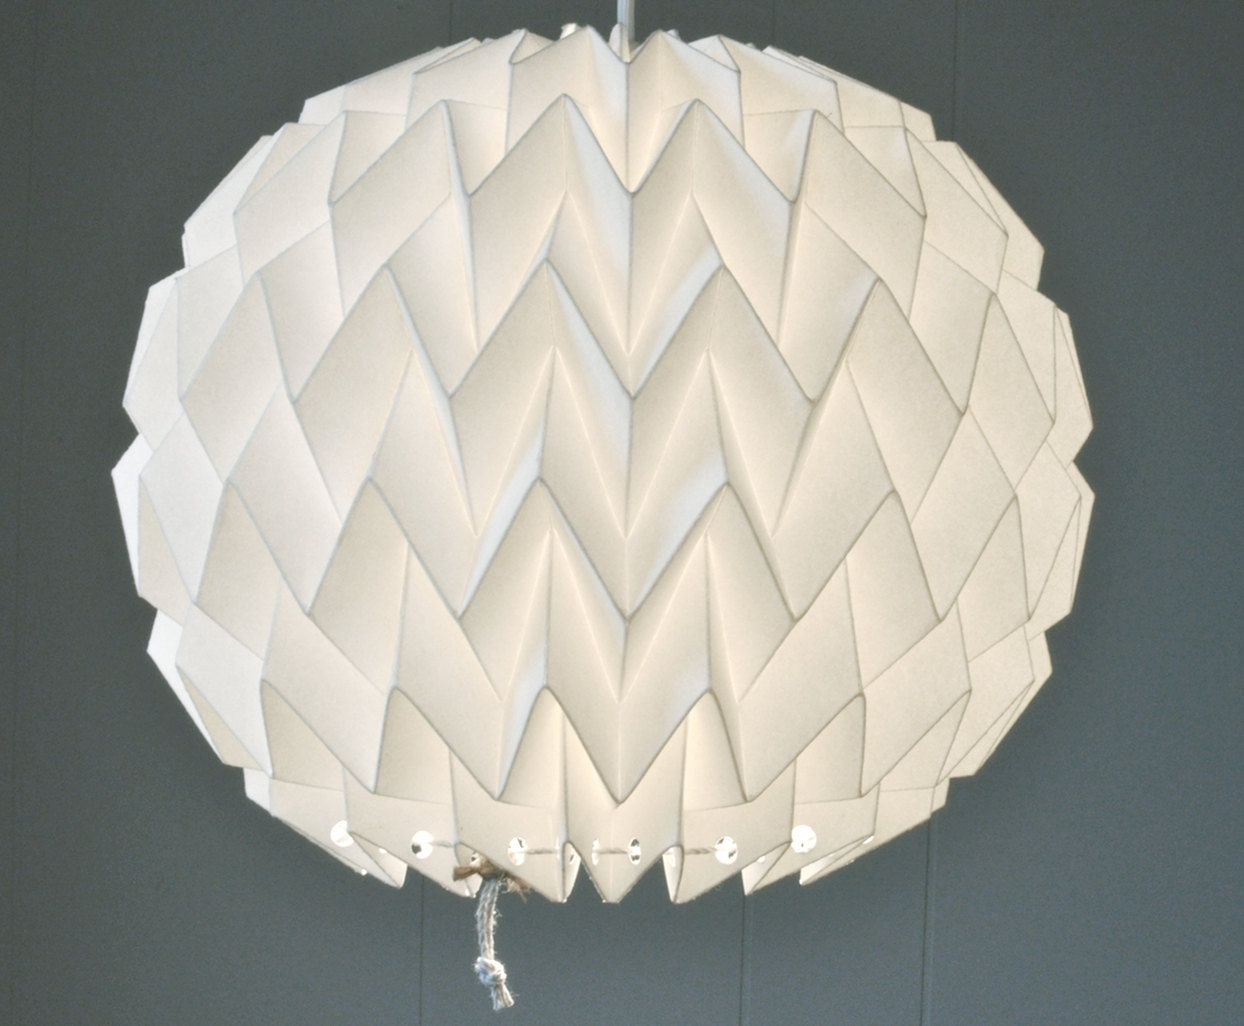 ... Etsy.  Lamp  Pinterest  Origami paper, Paper lamps and Lamp shades